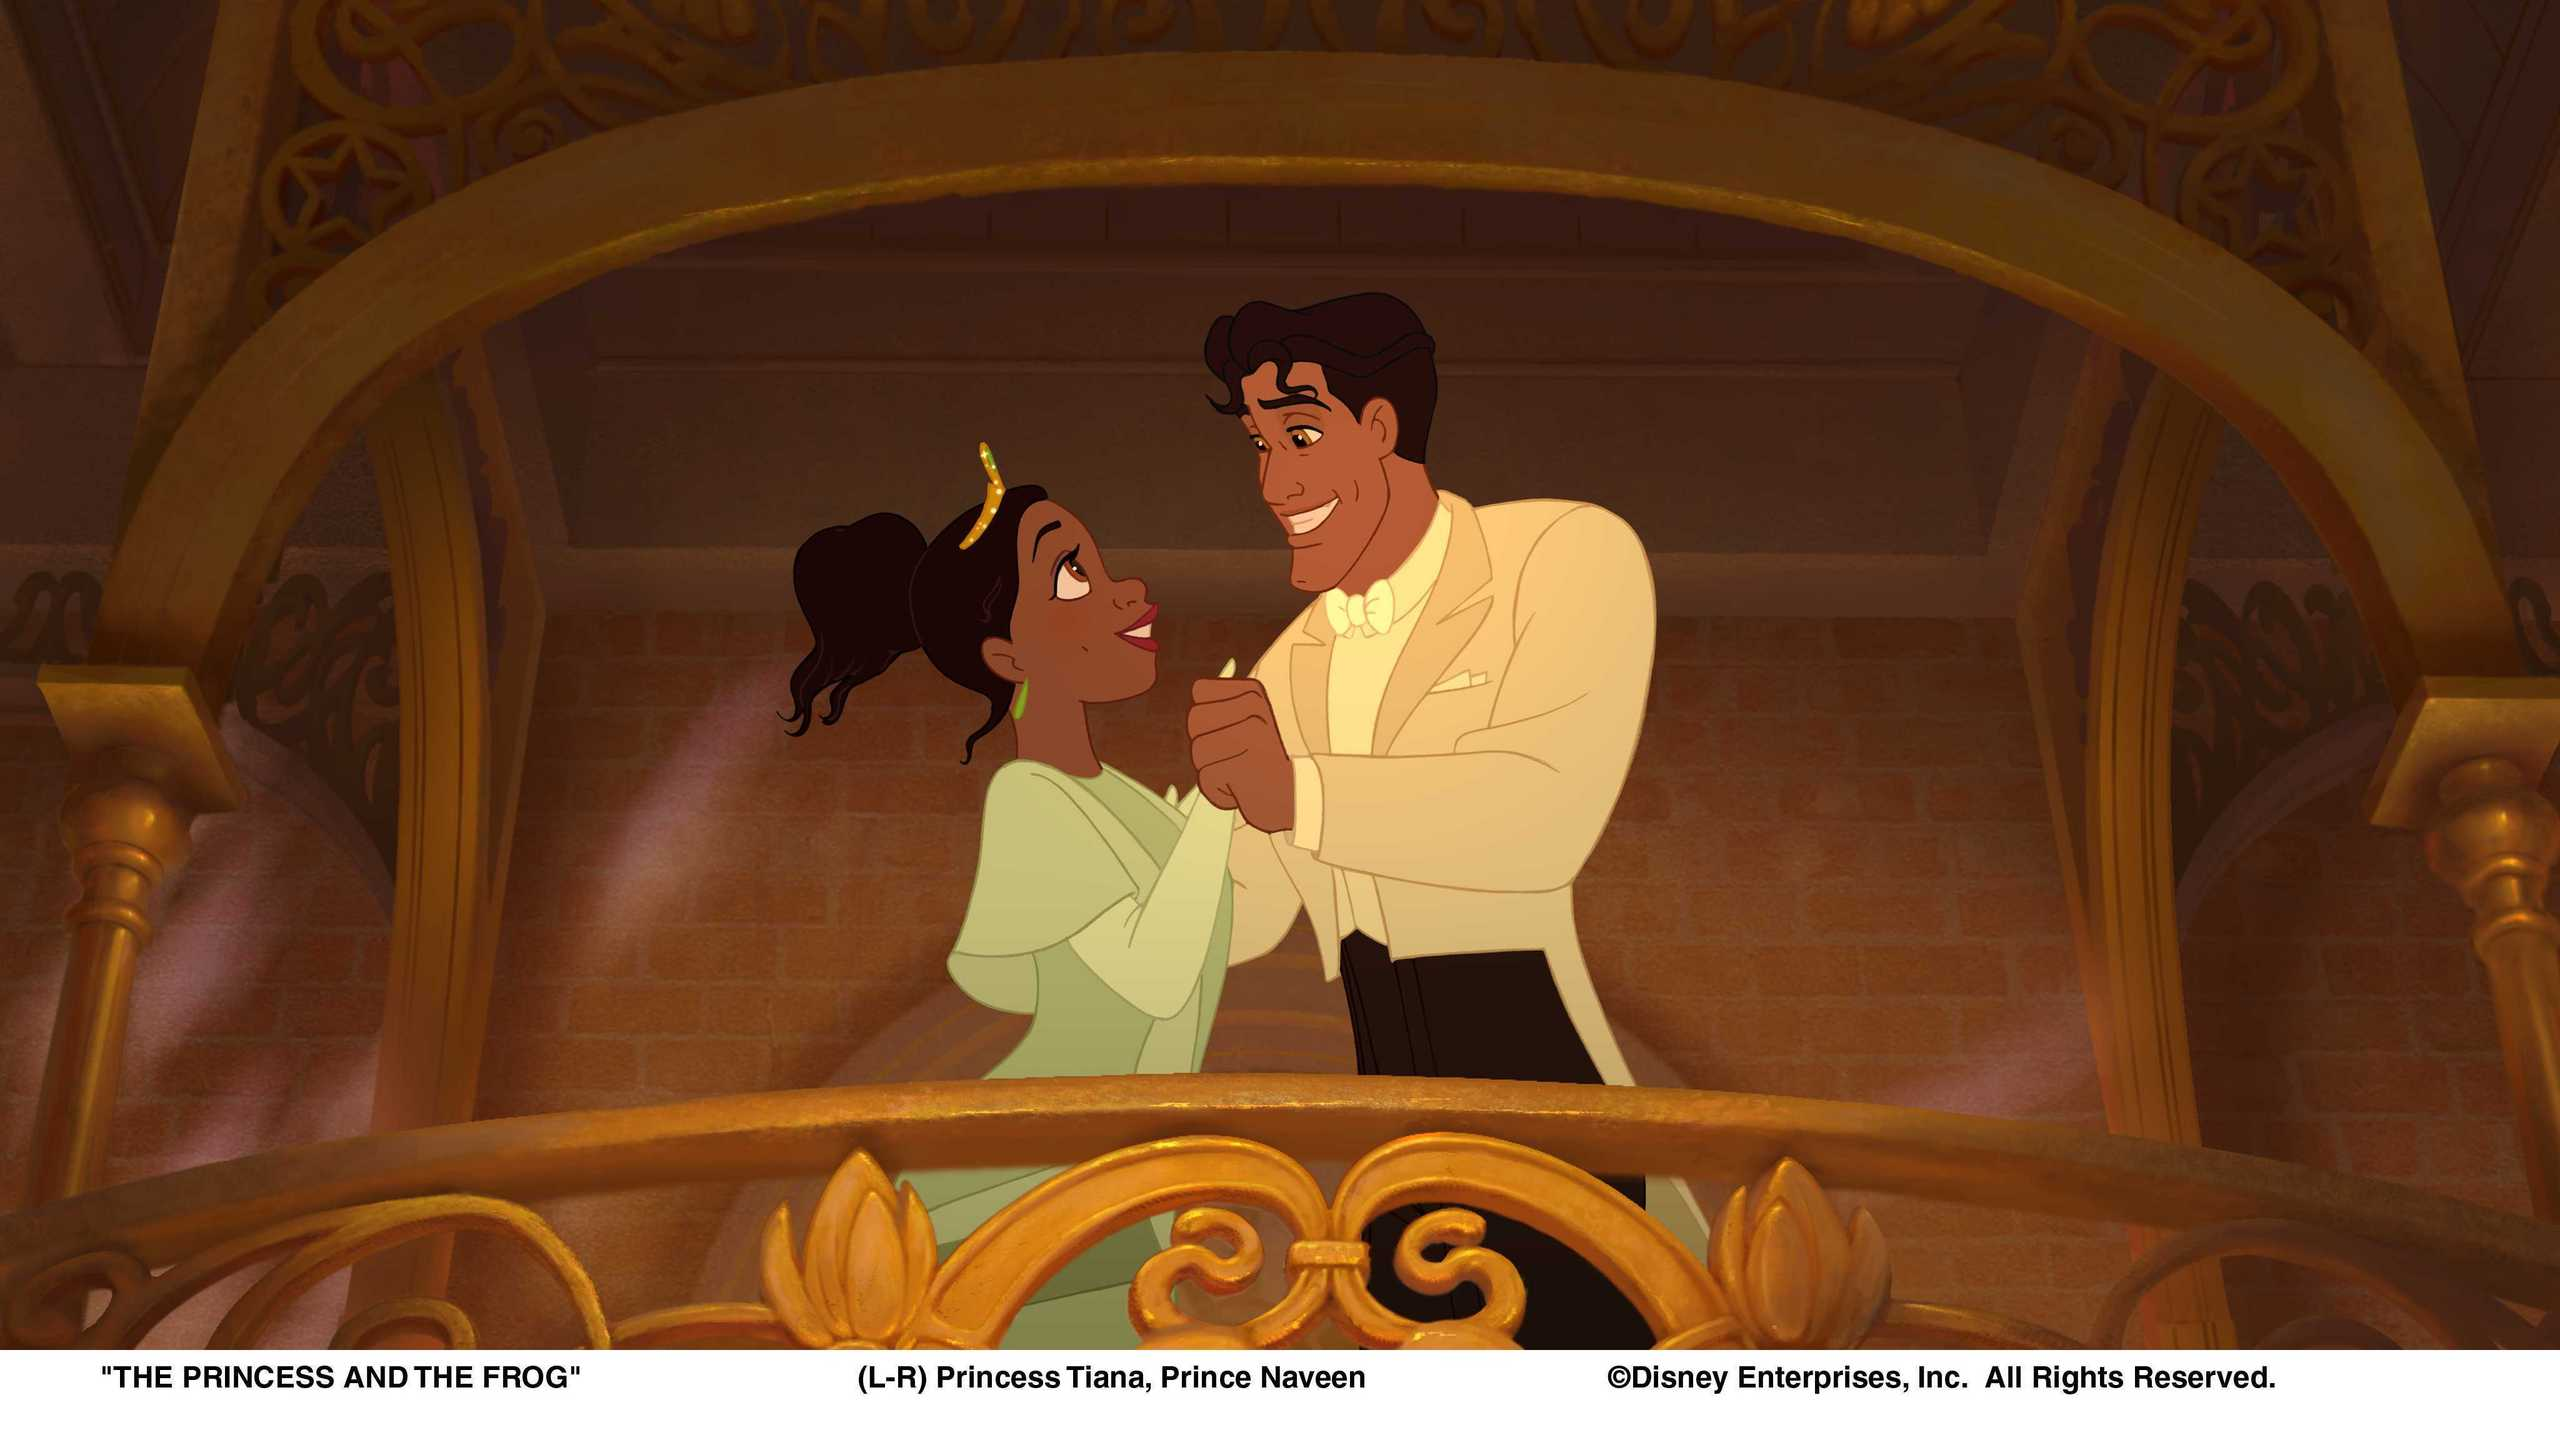 6 Disney Films That Are Undeniably Racist and Sexist